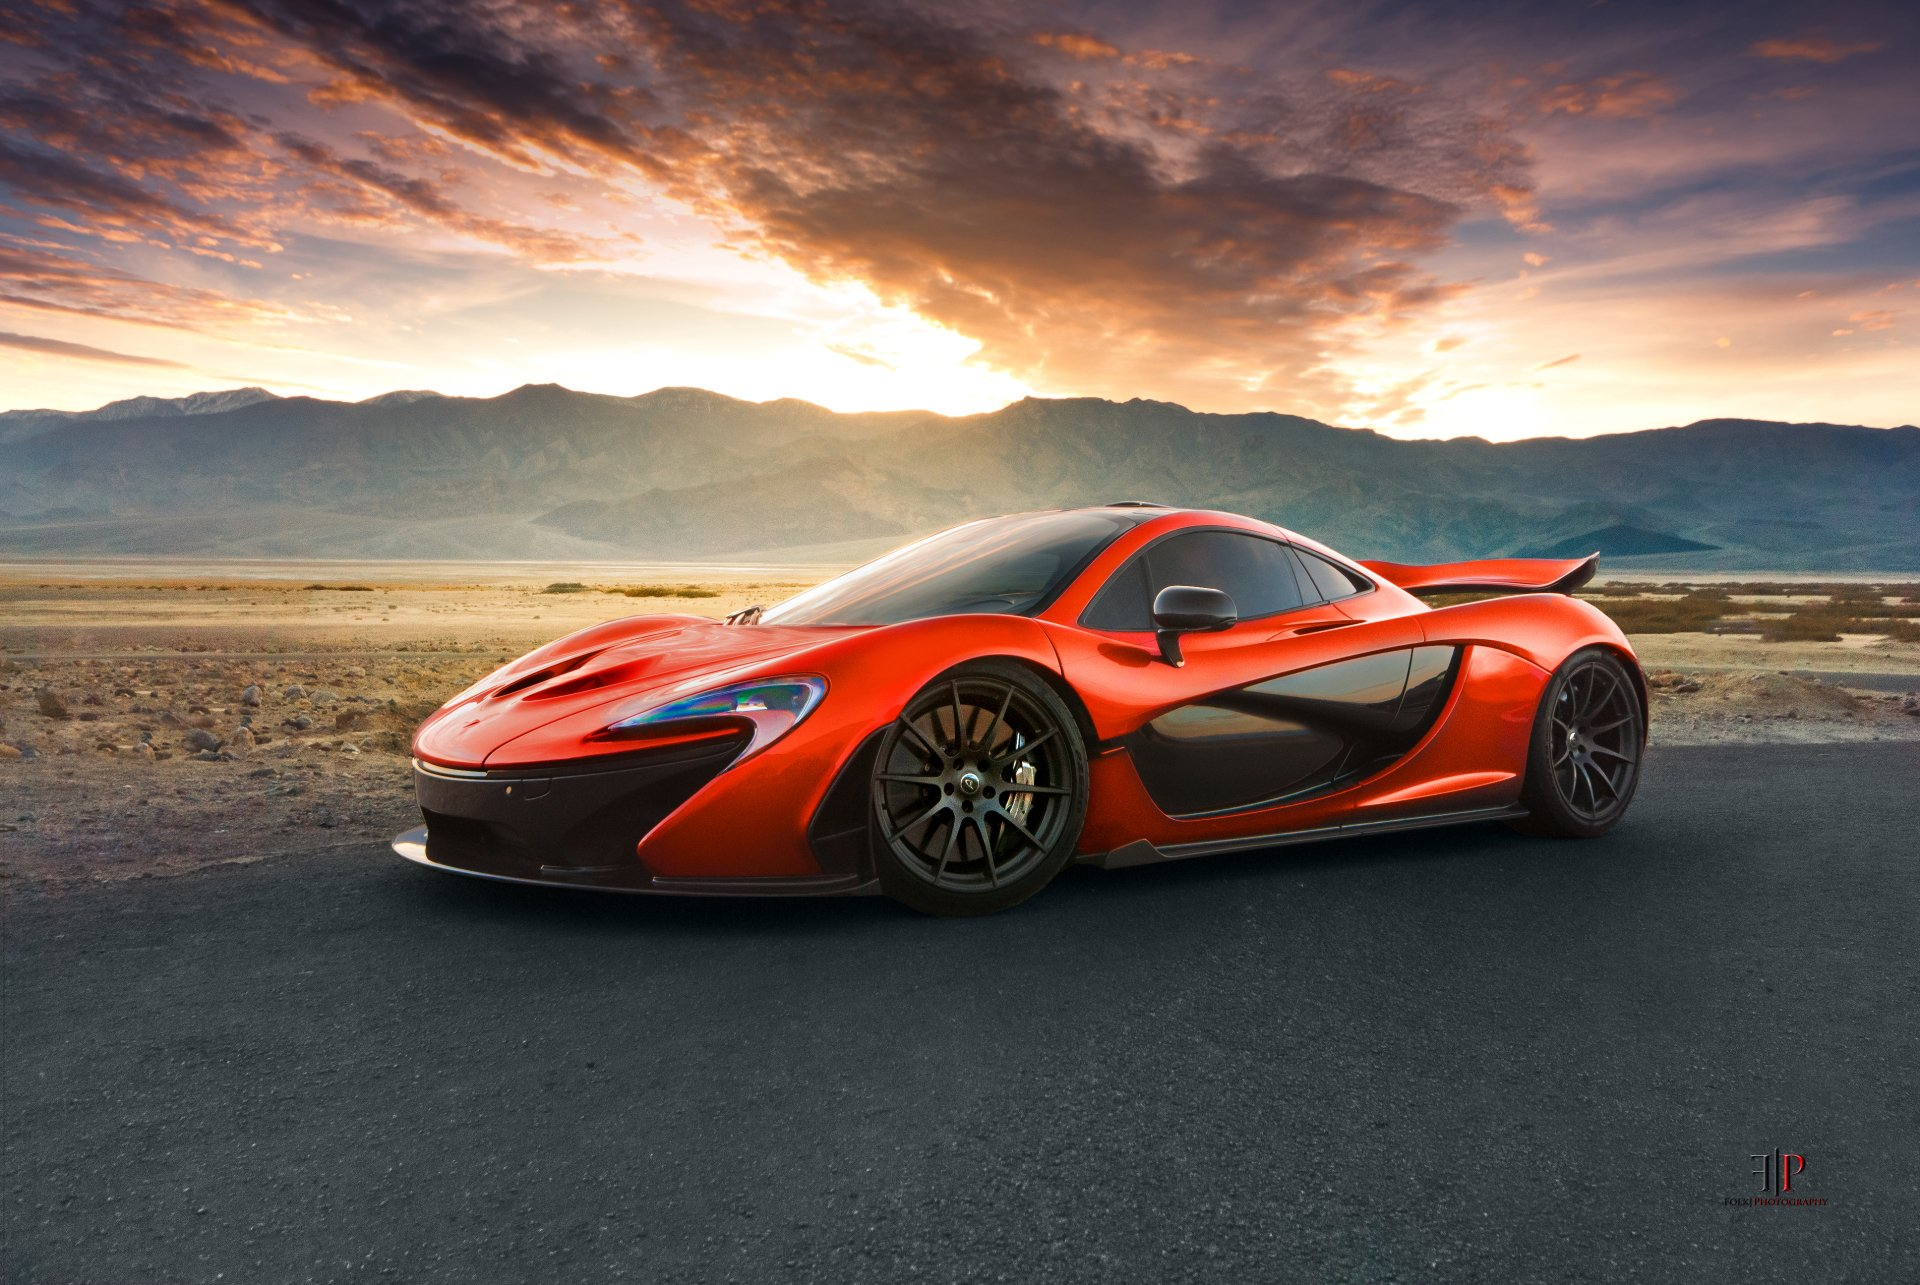 Vehicles - McLaren P1  McLaren Supercar Sport Car Car Vehicle Orange Car Wallpaper